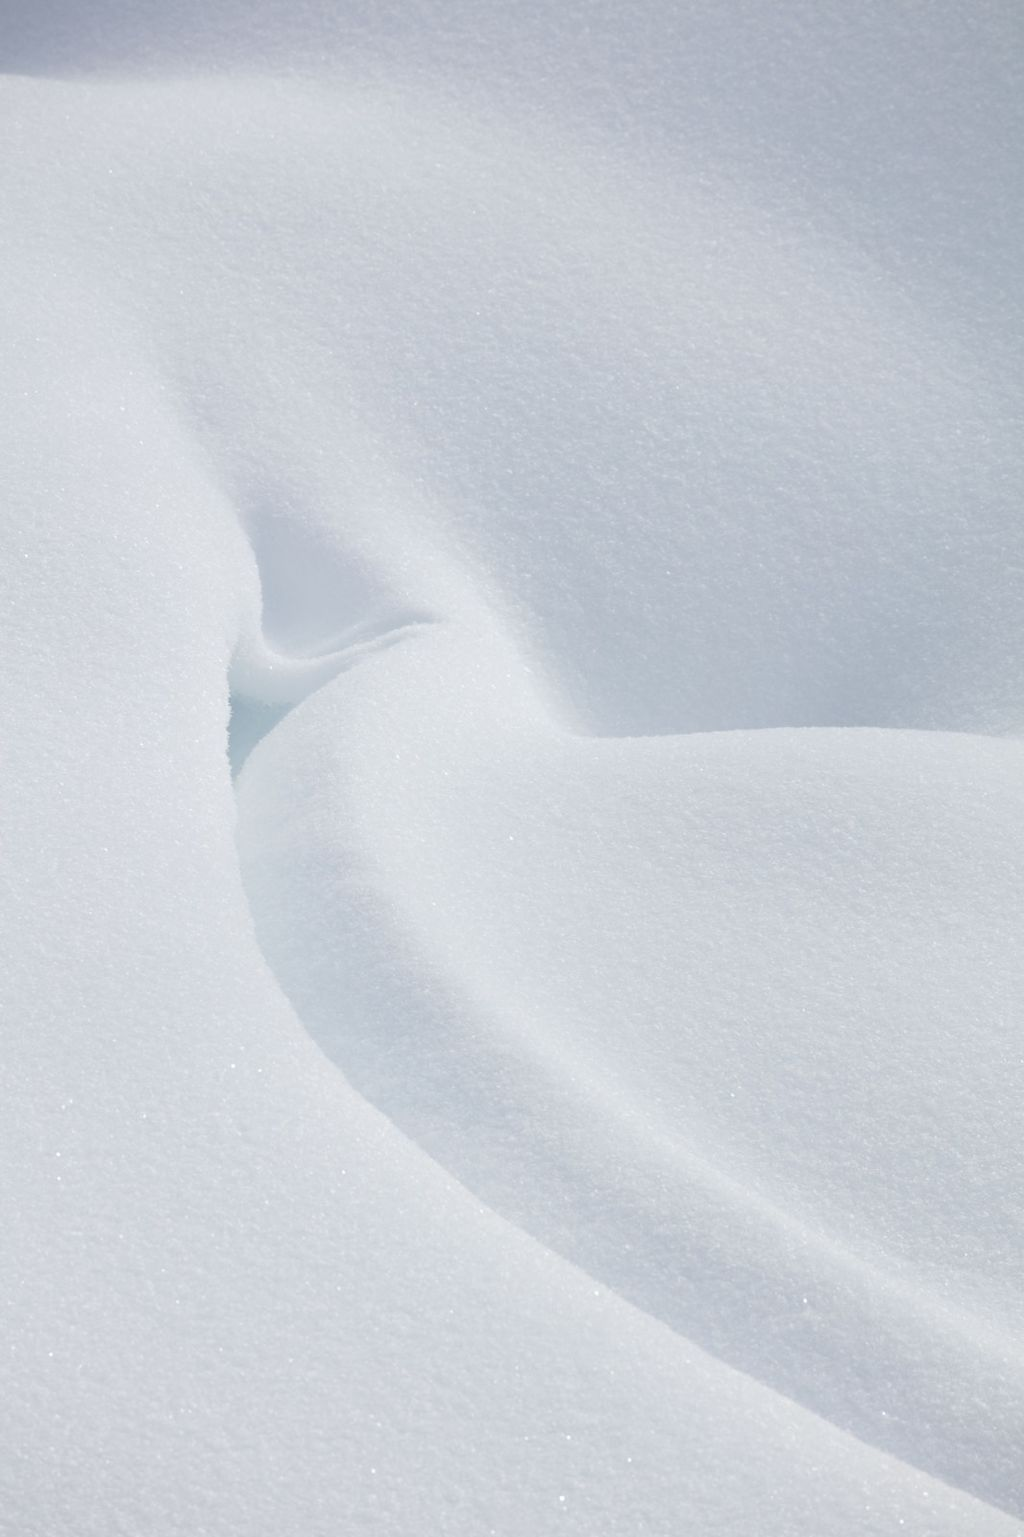 Canadian Rockies 004: snow pattern two